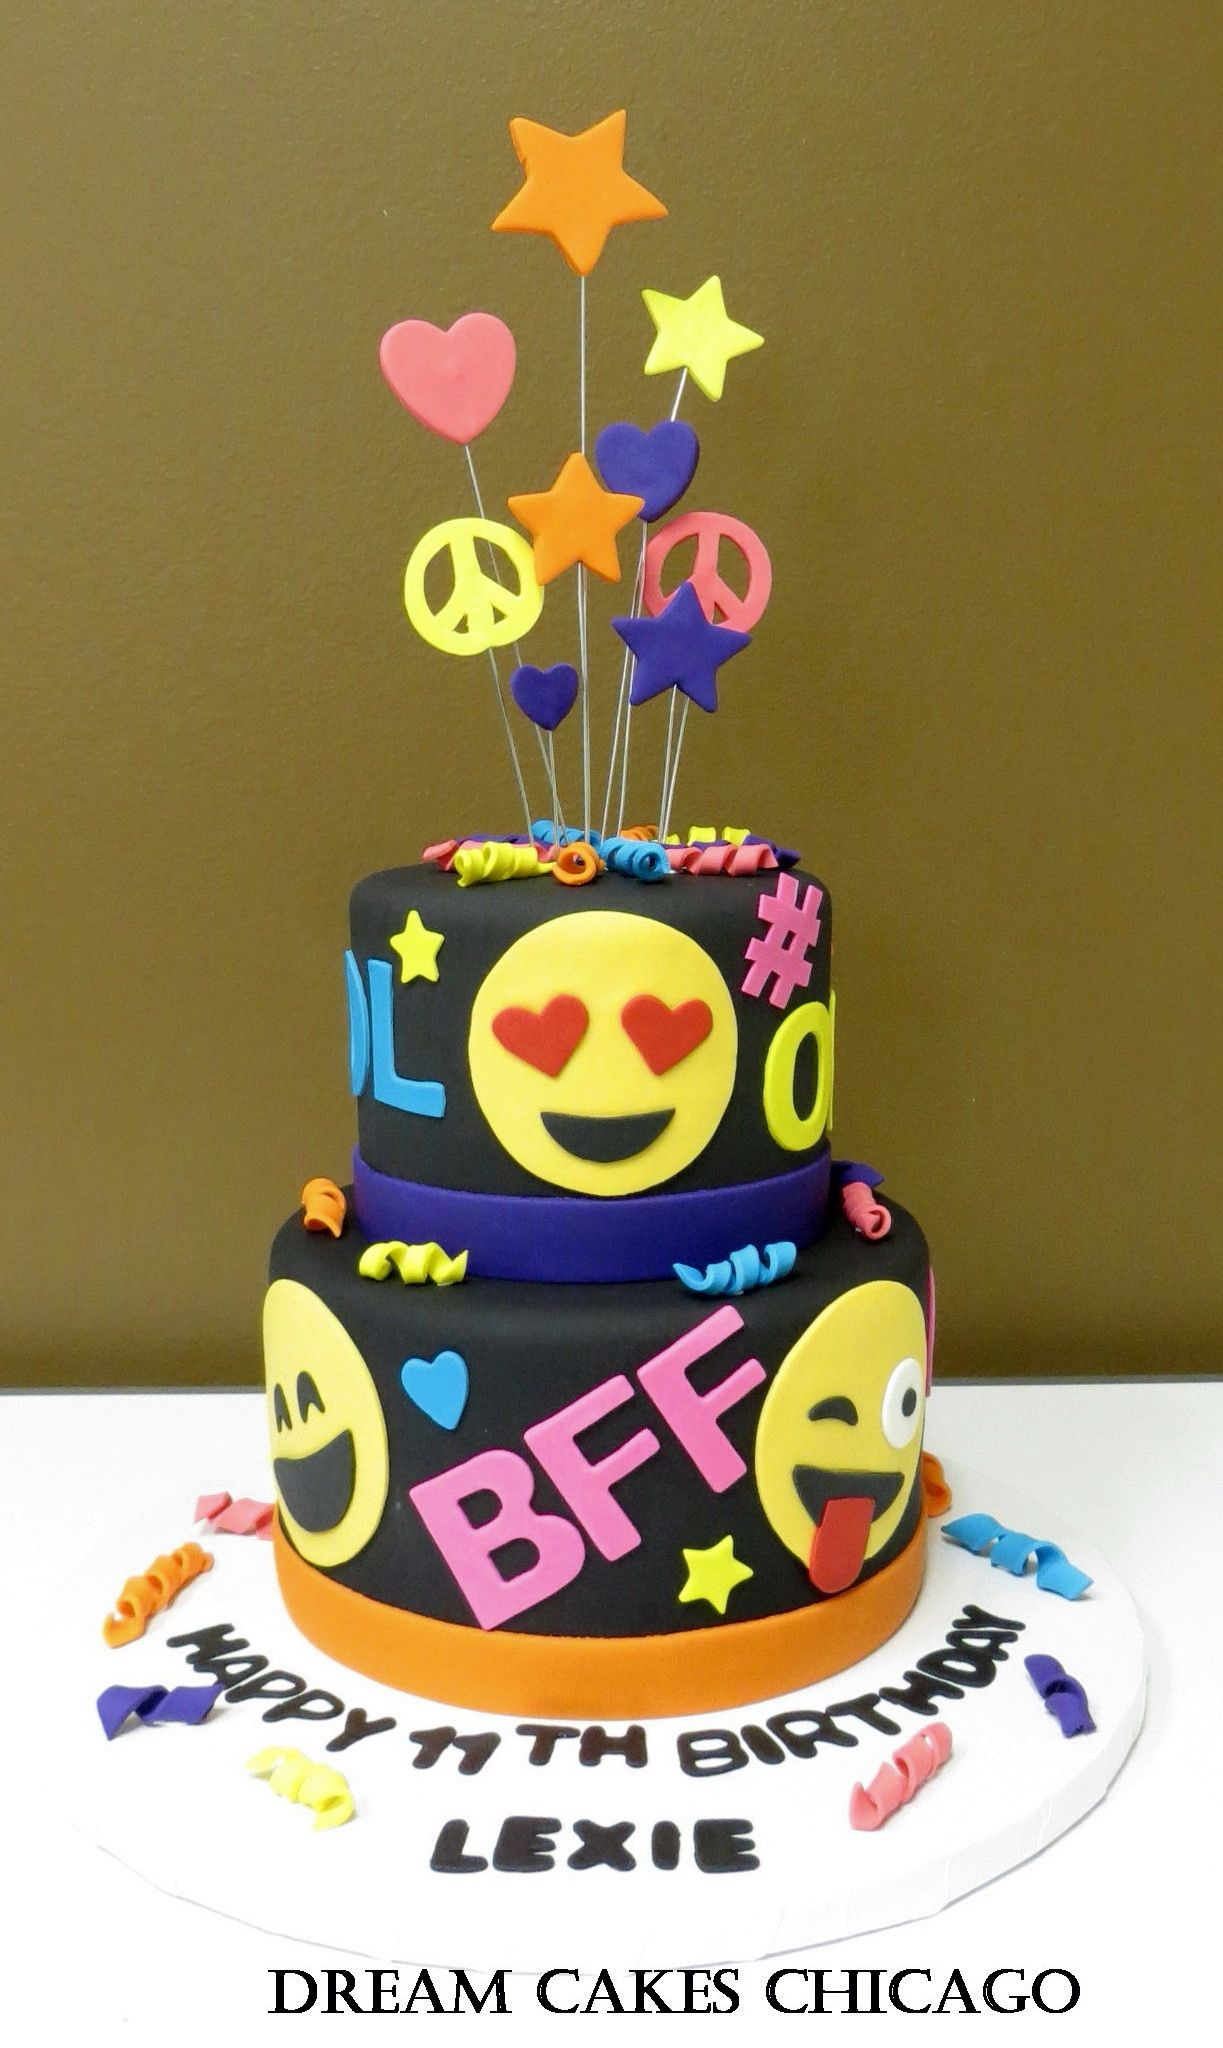 Best Girl Birthday Cakes Girl Birthday Emoji And Birthday Cakes - 10th birthday cake